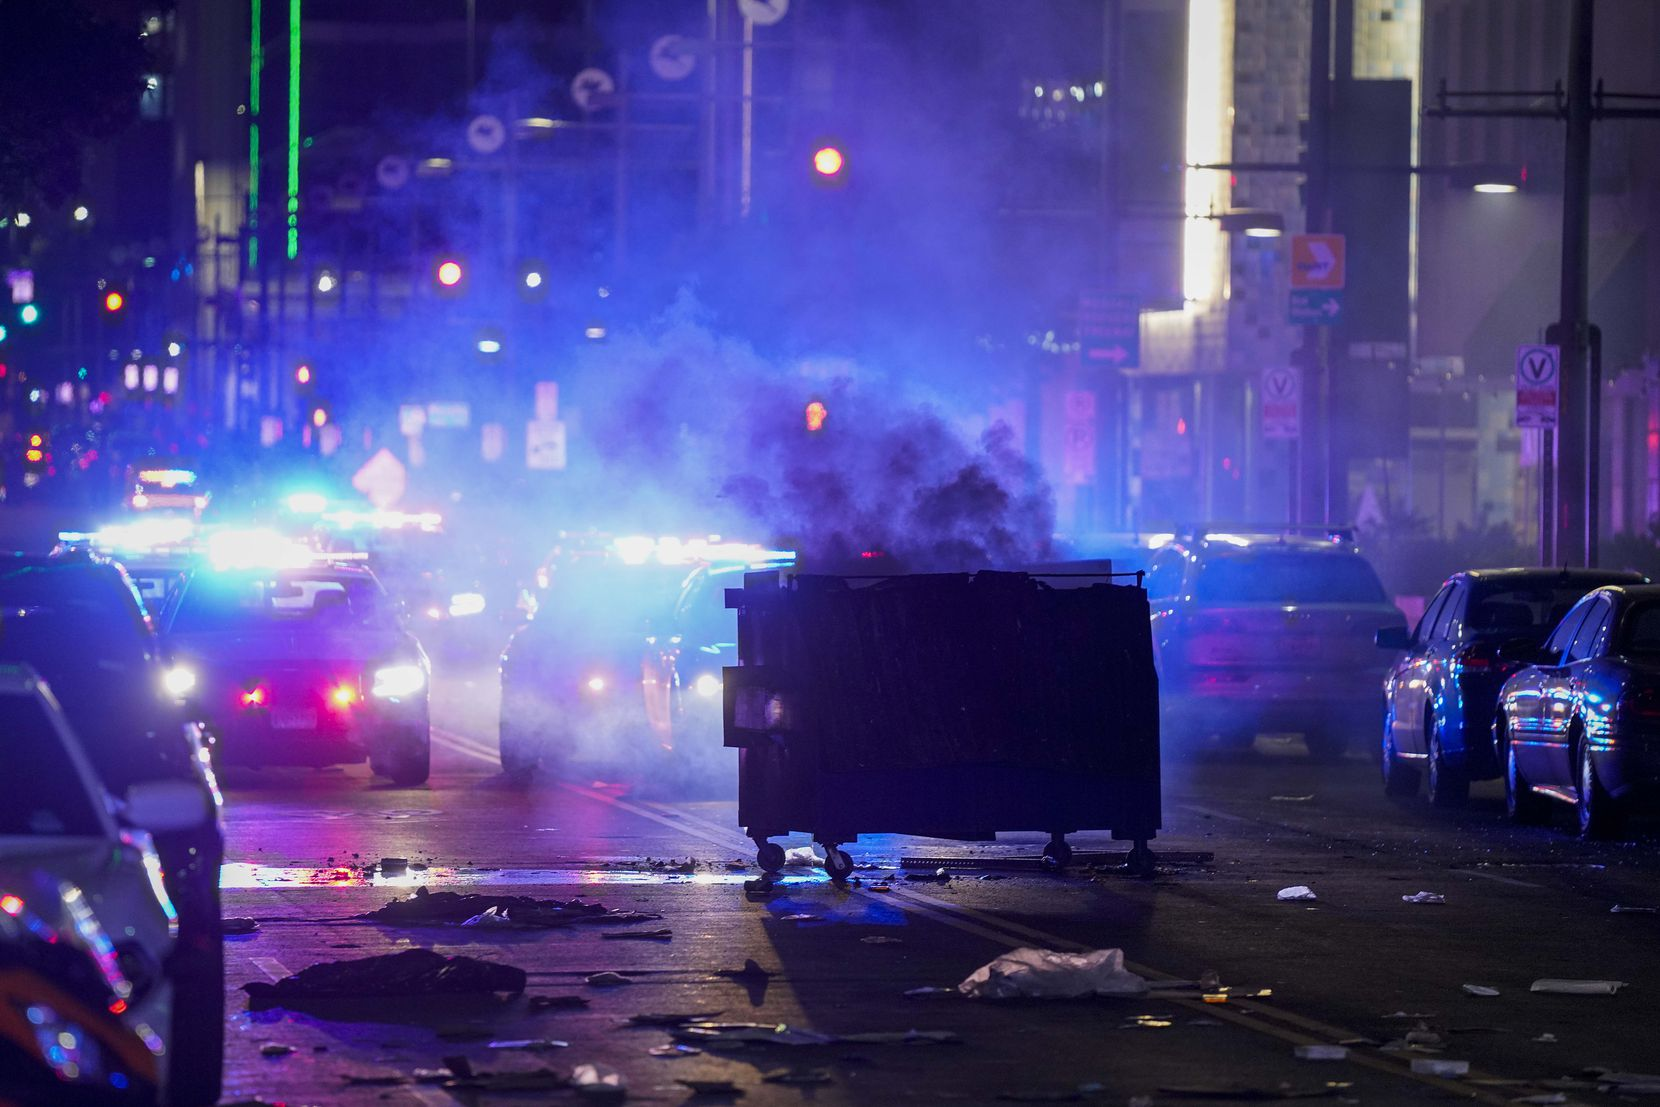 A dumpster smolders as debris covers the middle of Main Street downtown following a protest against police brutality in the early morning hours of Saturday, May 30, 2020, in Dallas. The protest against police brutality was organized by Next Generation Action Network in response to the in-custody death of George Floyd in Minneapolis.